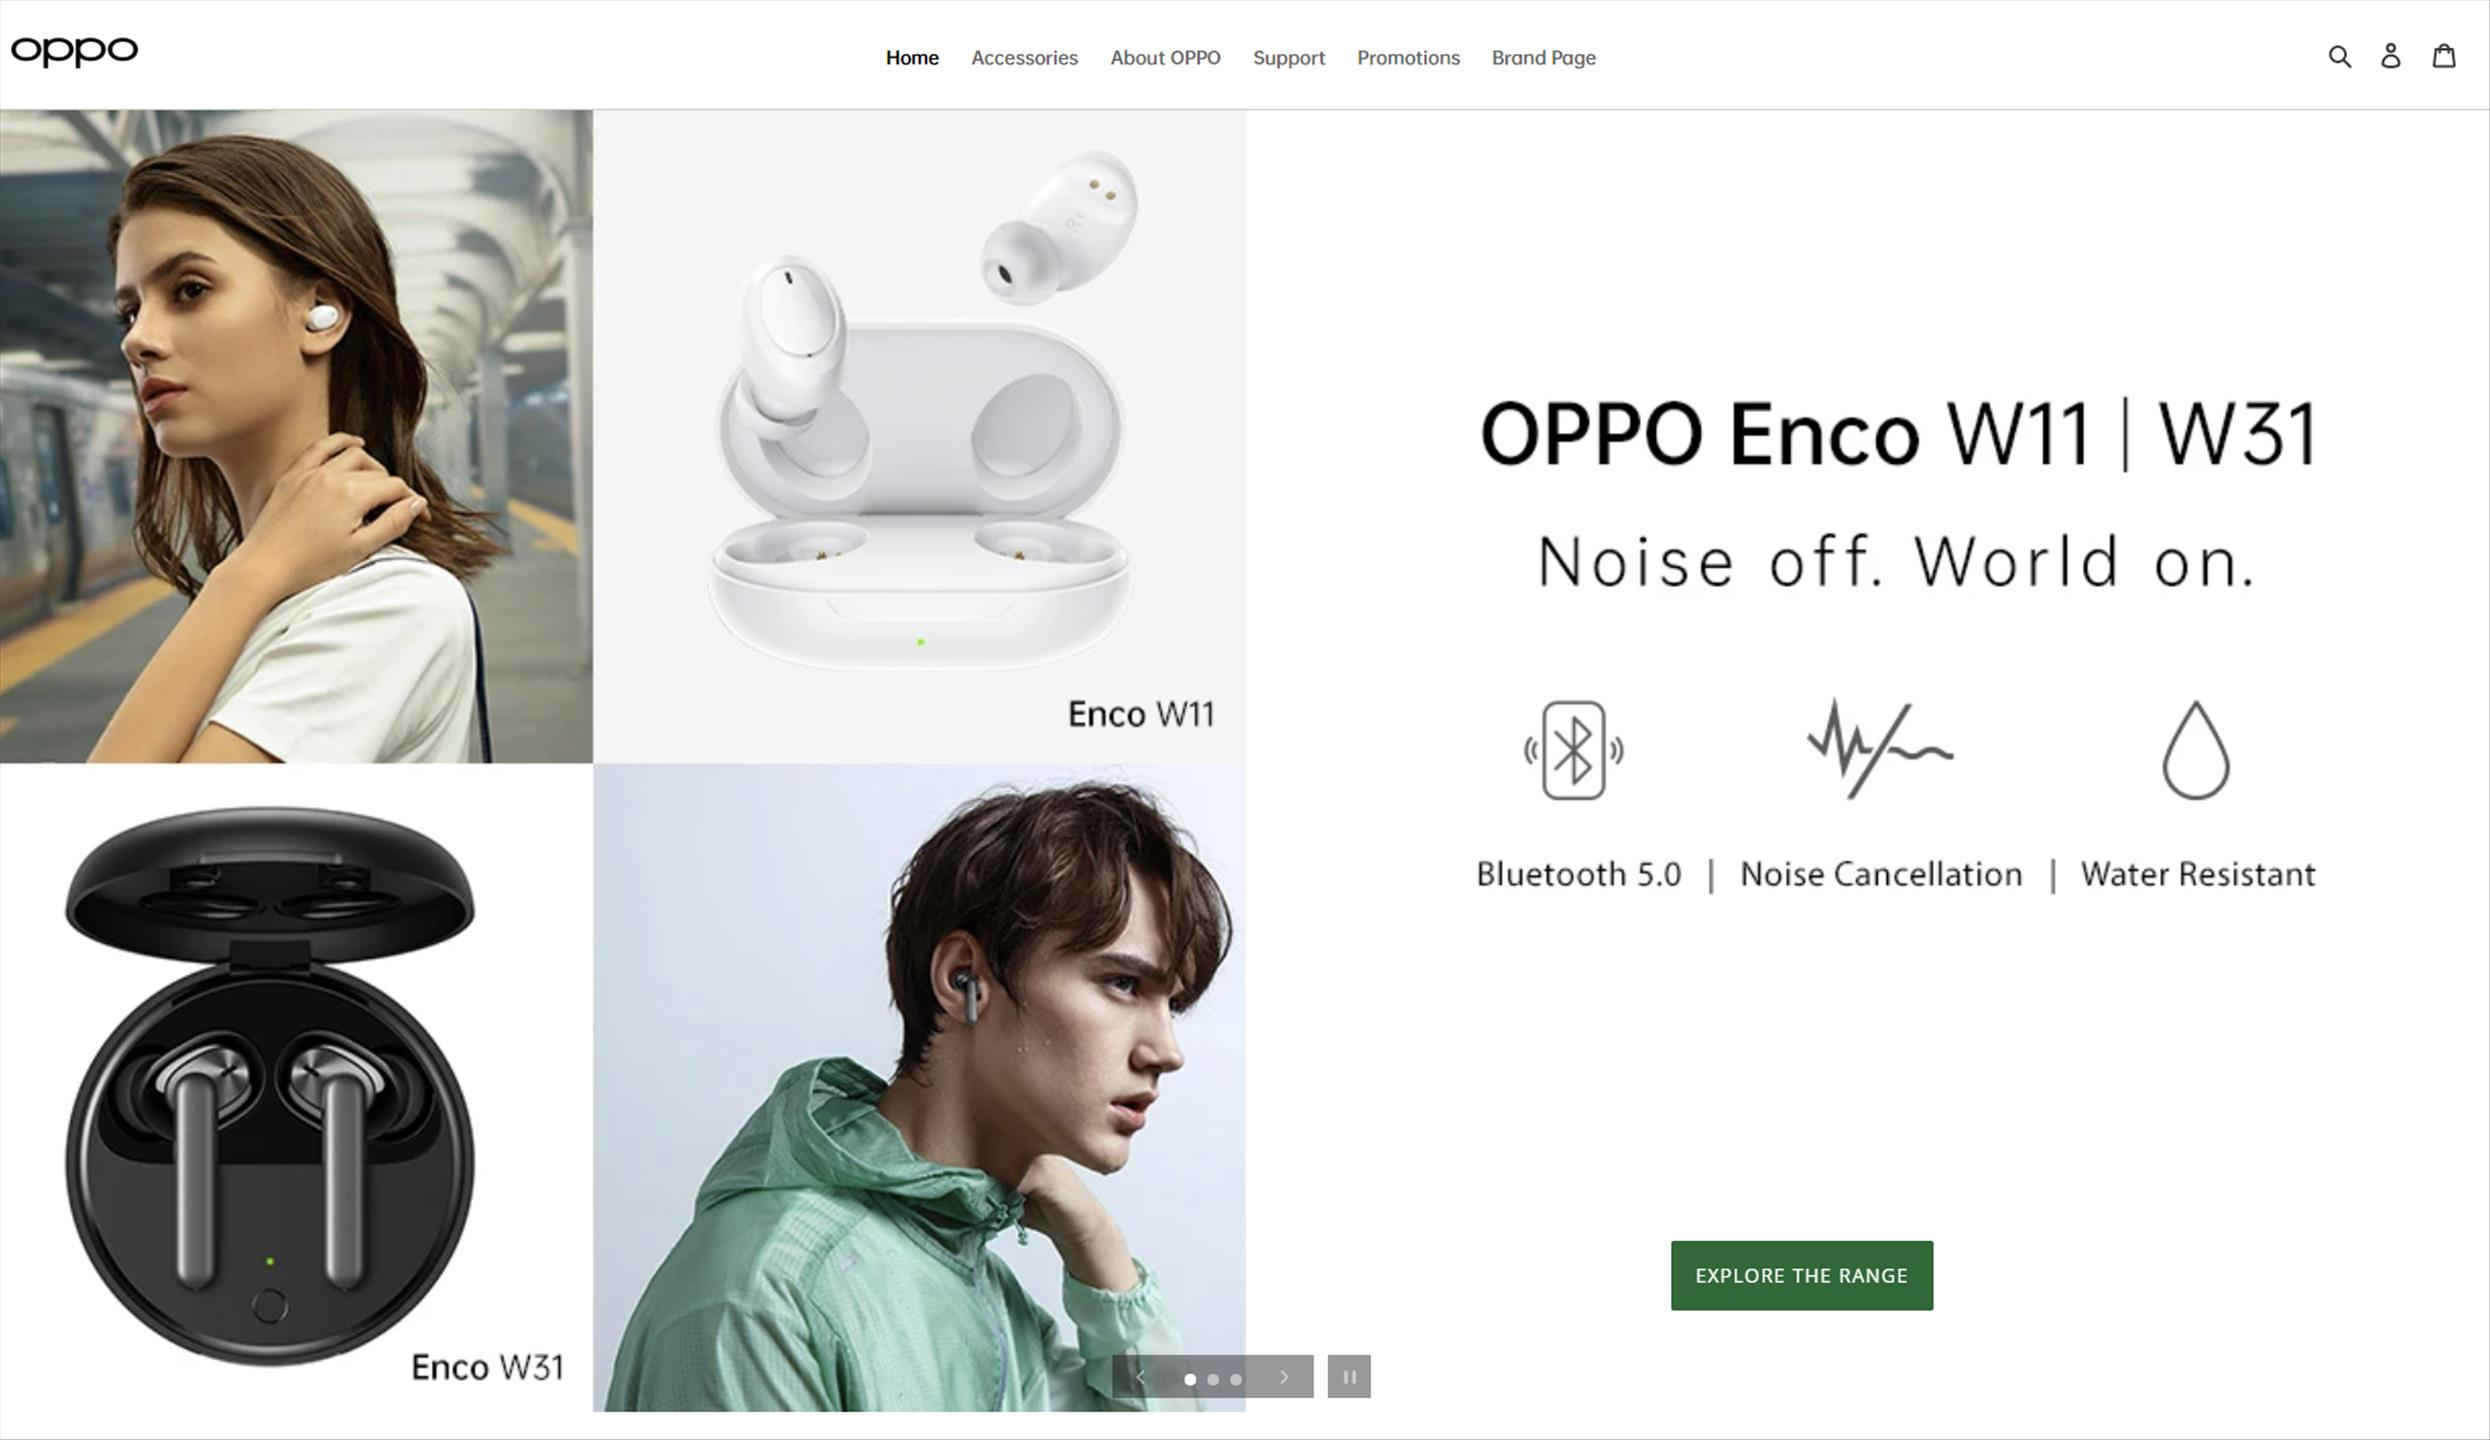 OPPO now has an online store in Australia